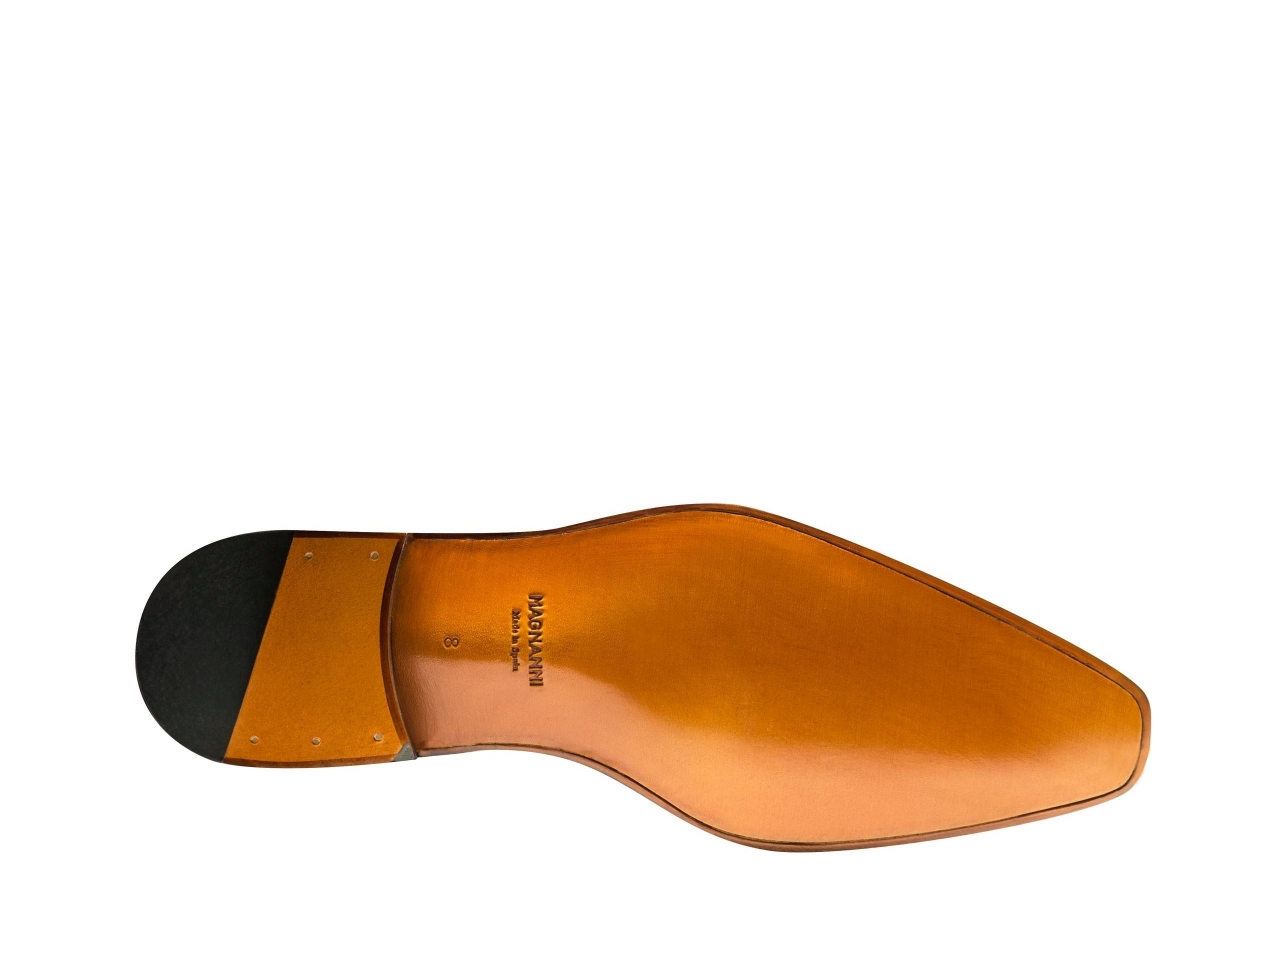 The sole of the Corey